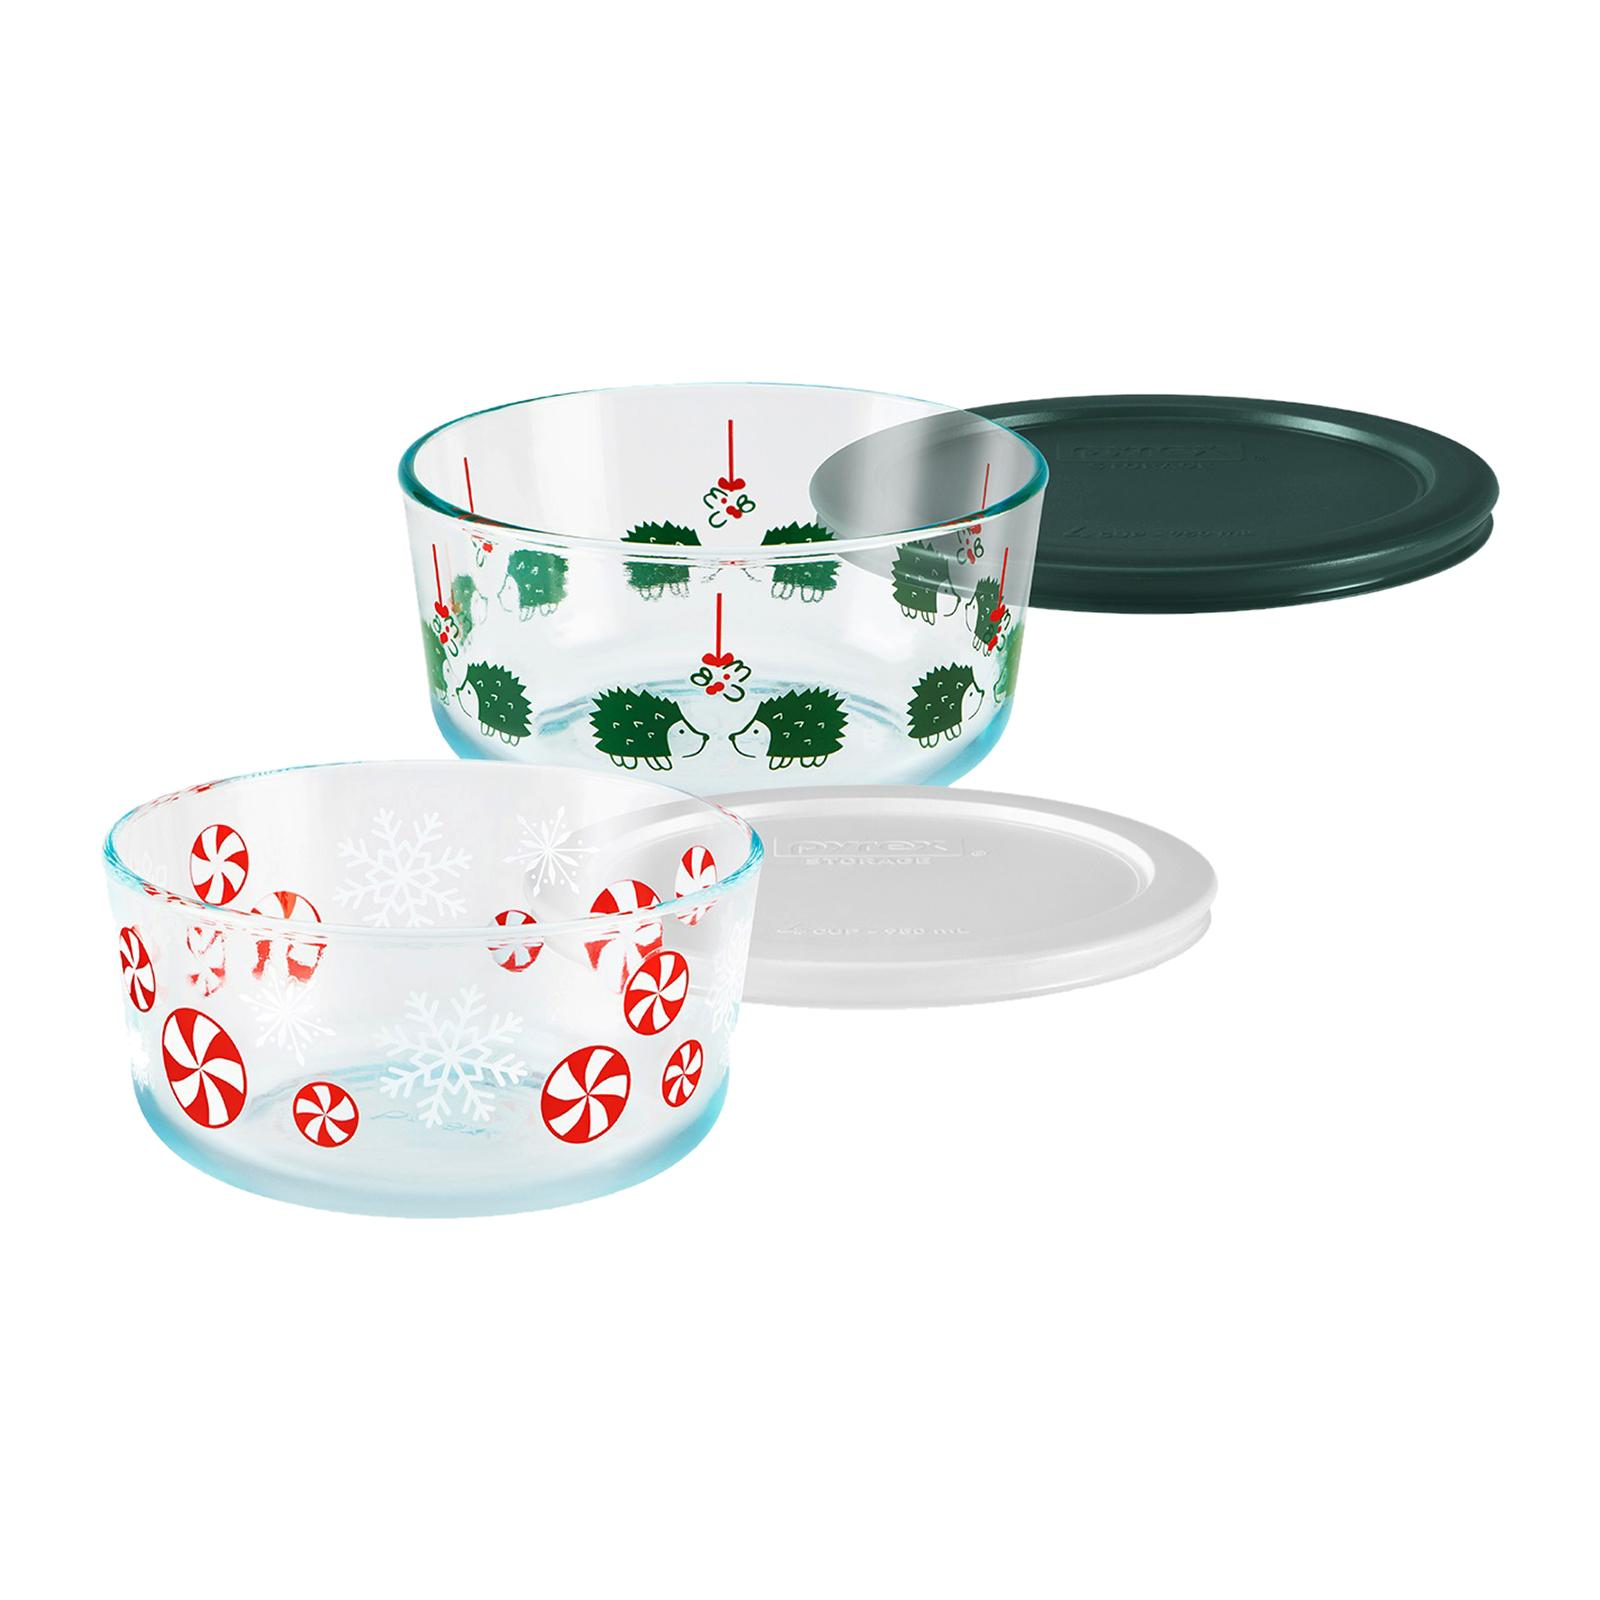 Pyrex 4 PCS 4 Cup Round Decorated Storage (Design: Hedgehog Love And Peppermints)